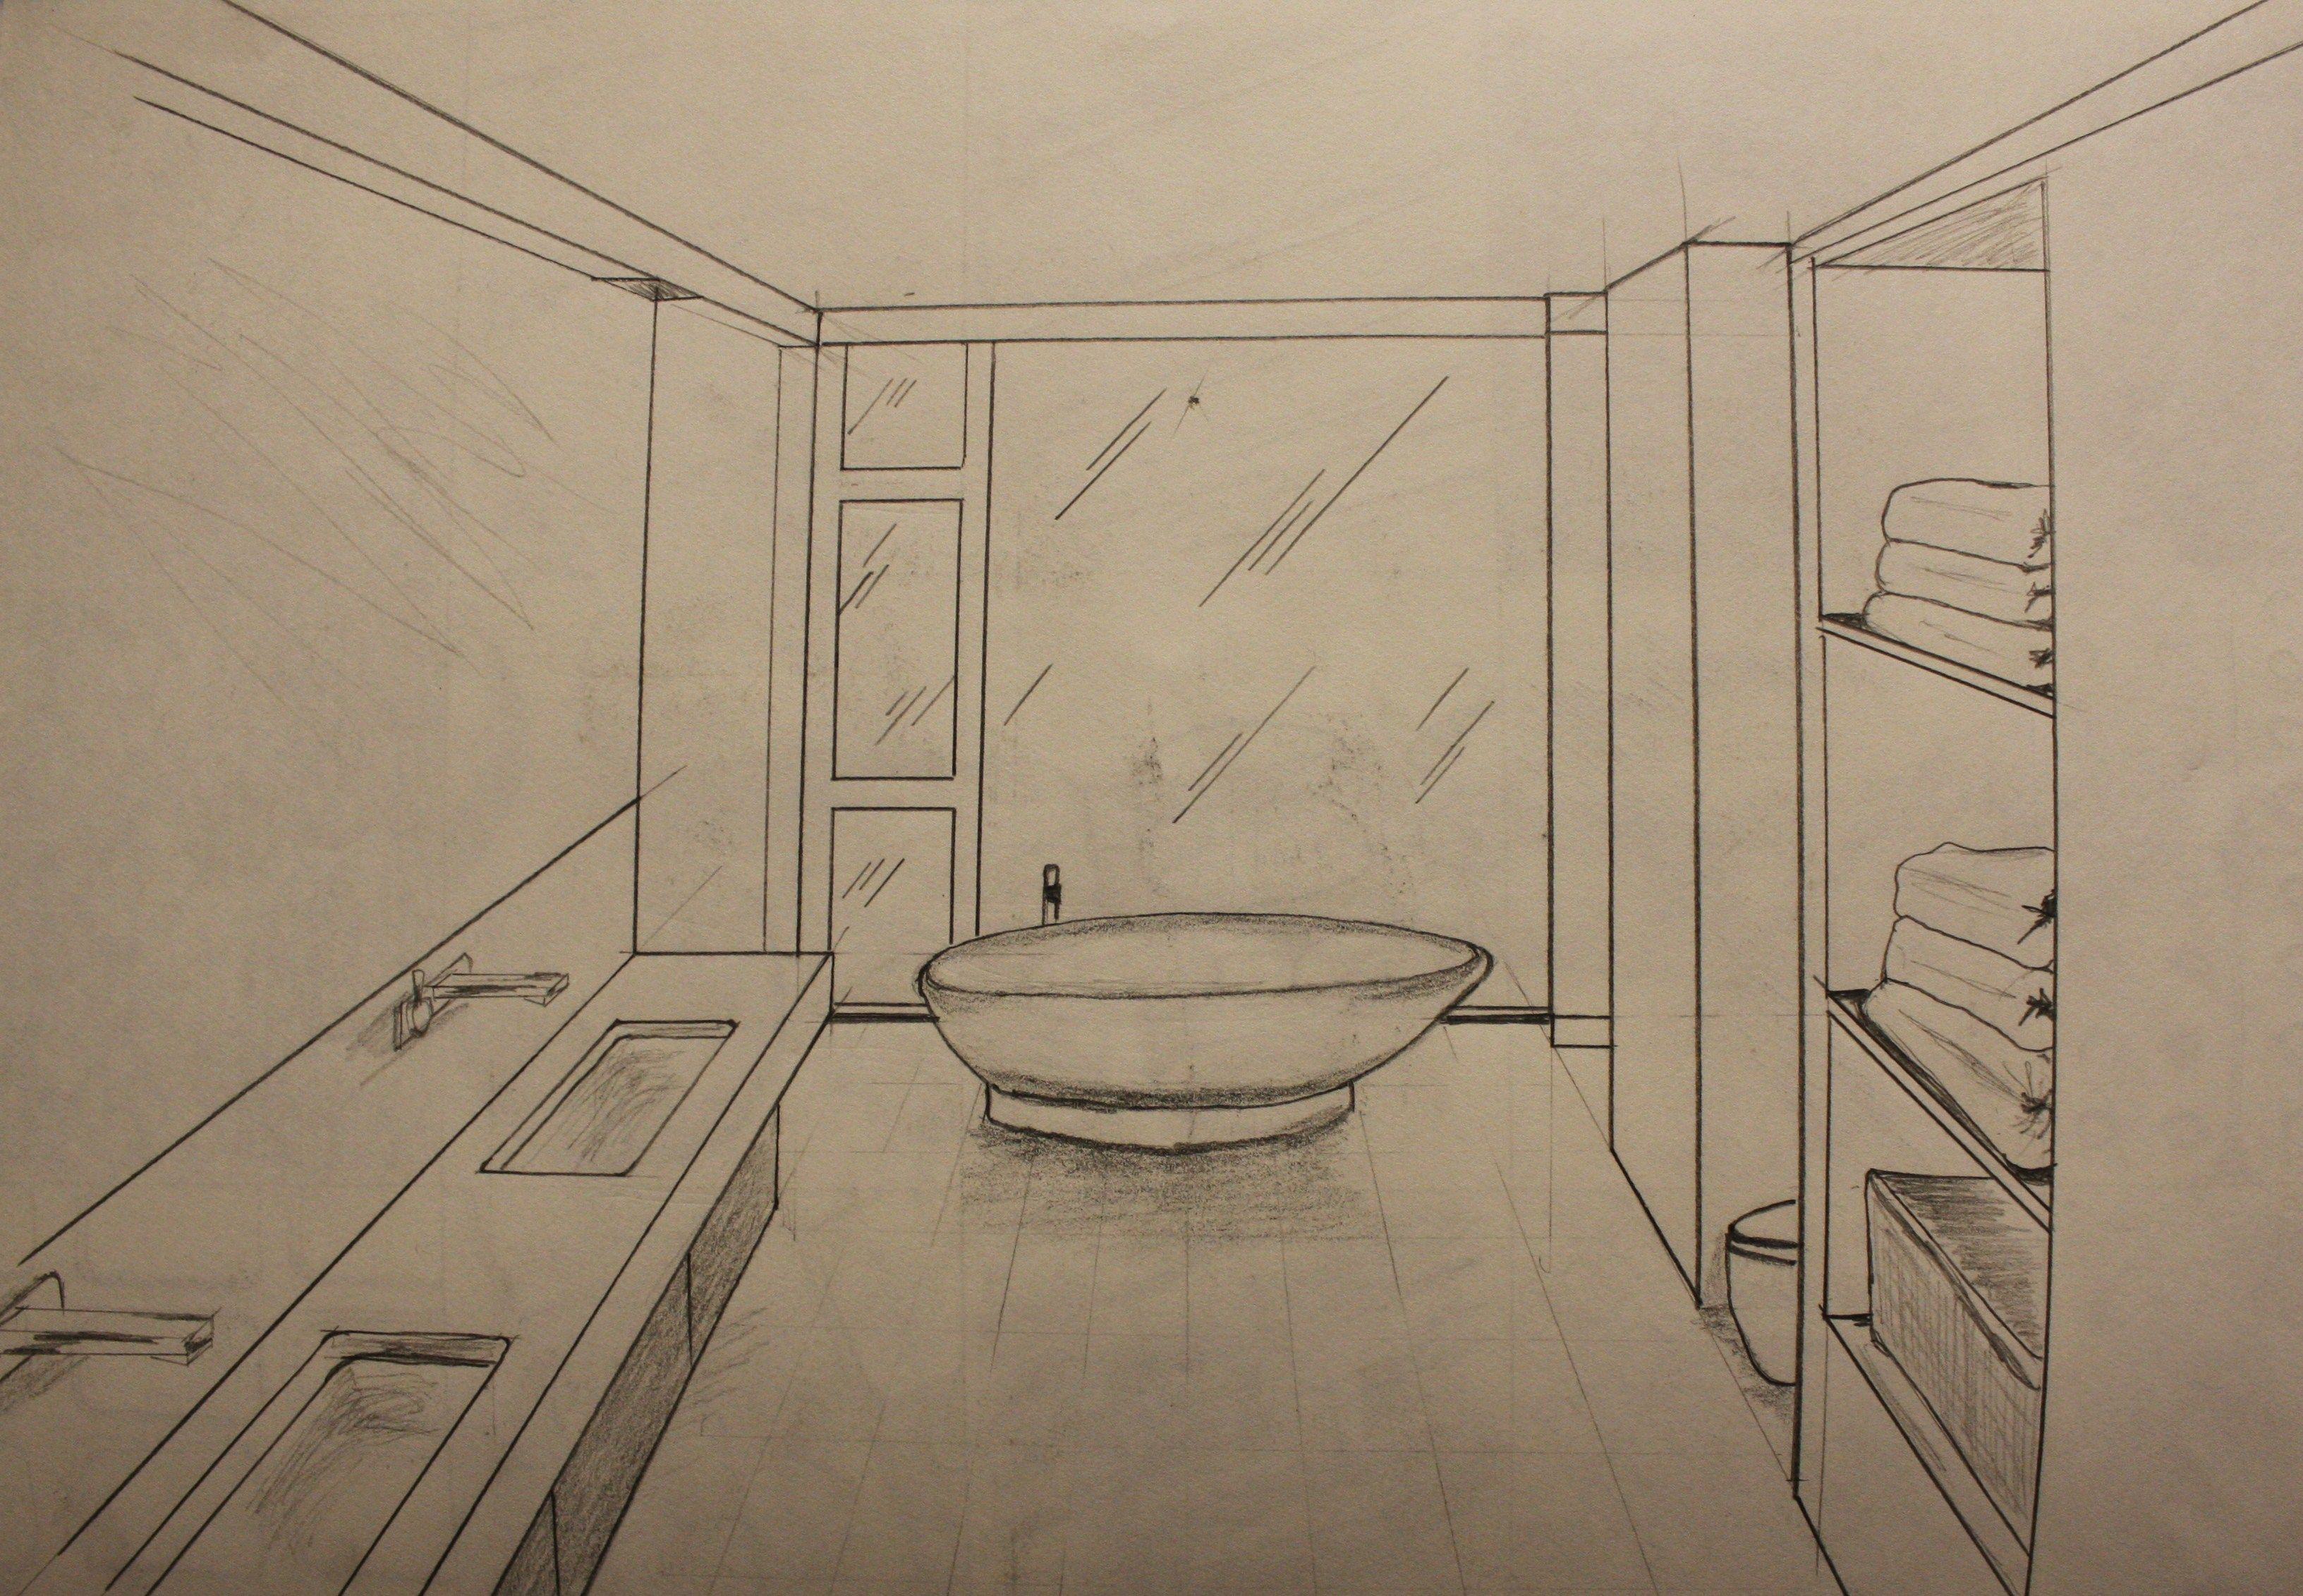 Bathroom perspective drawing - Quick Draw Bathroom Perspective Design Projects Pinterest Bathroom Drawing Bathroom Drawing Image Tips